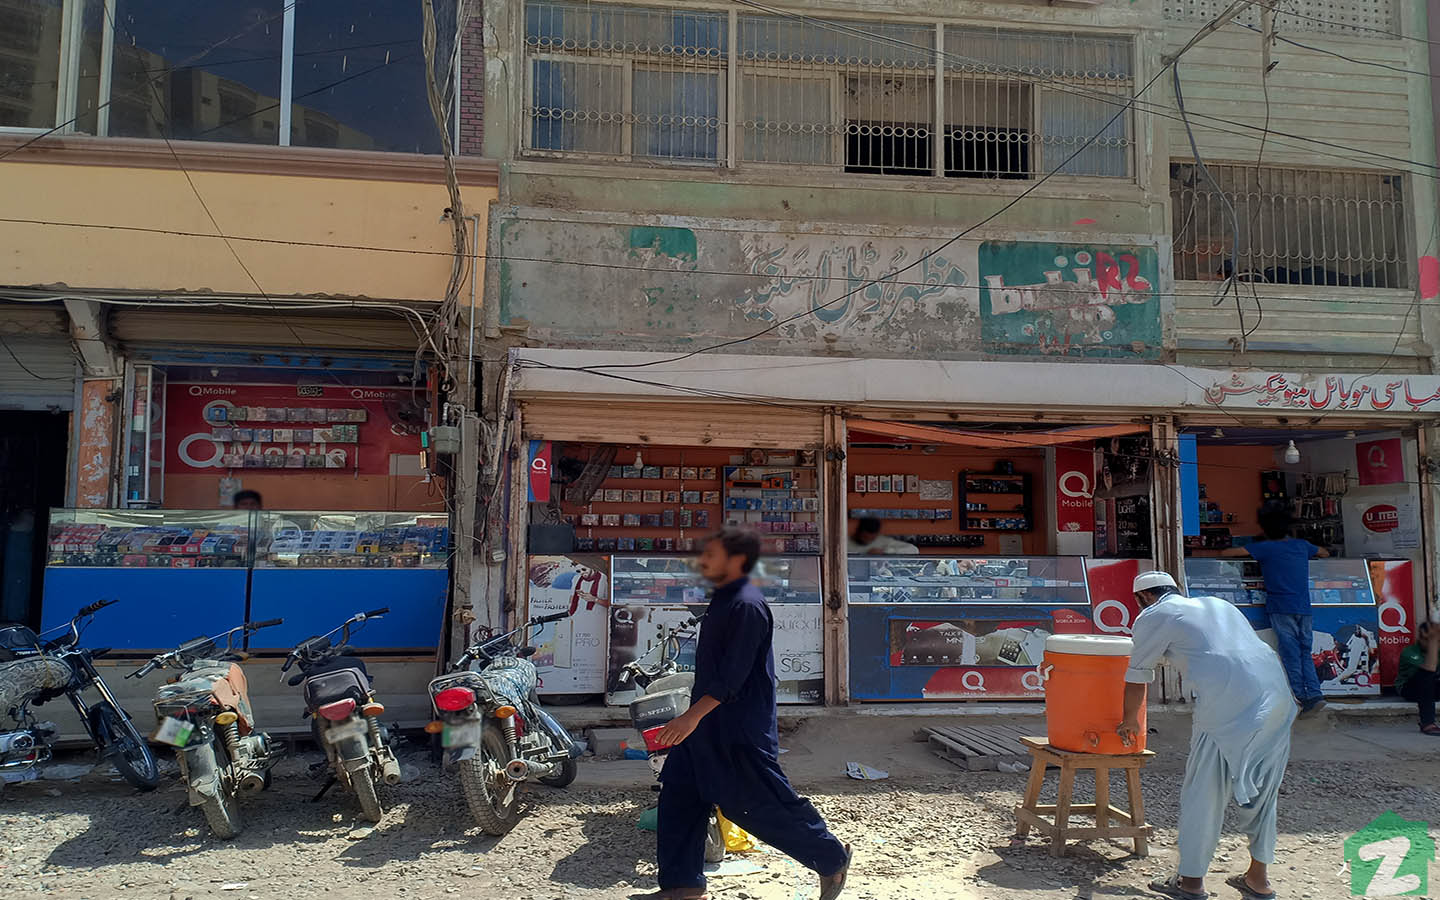 This picture is a view of the happenings in Korangi Mobile Market near Korangi Industrial Area